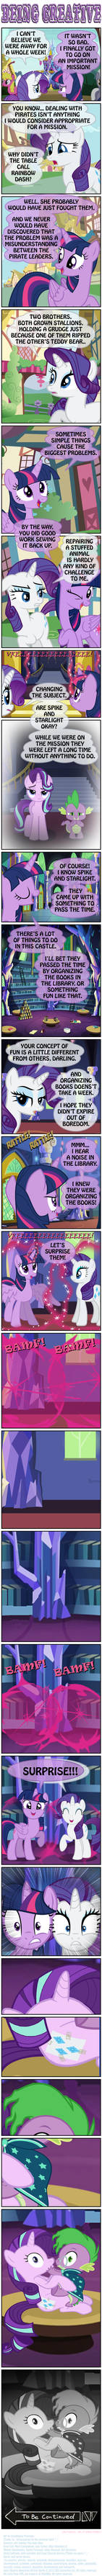 PONY SHORTS - BEING CREATIVE